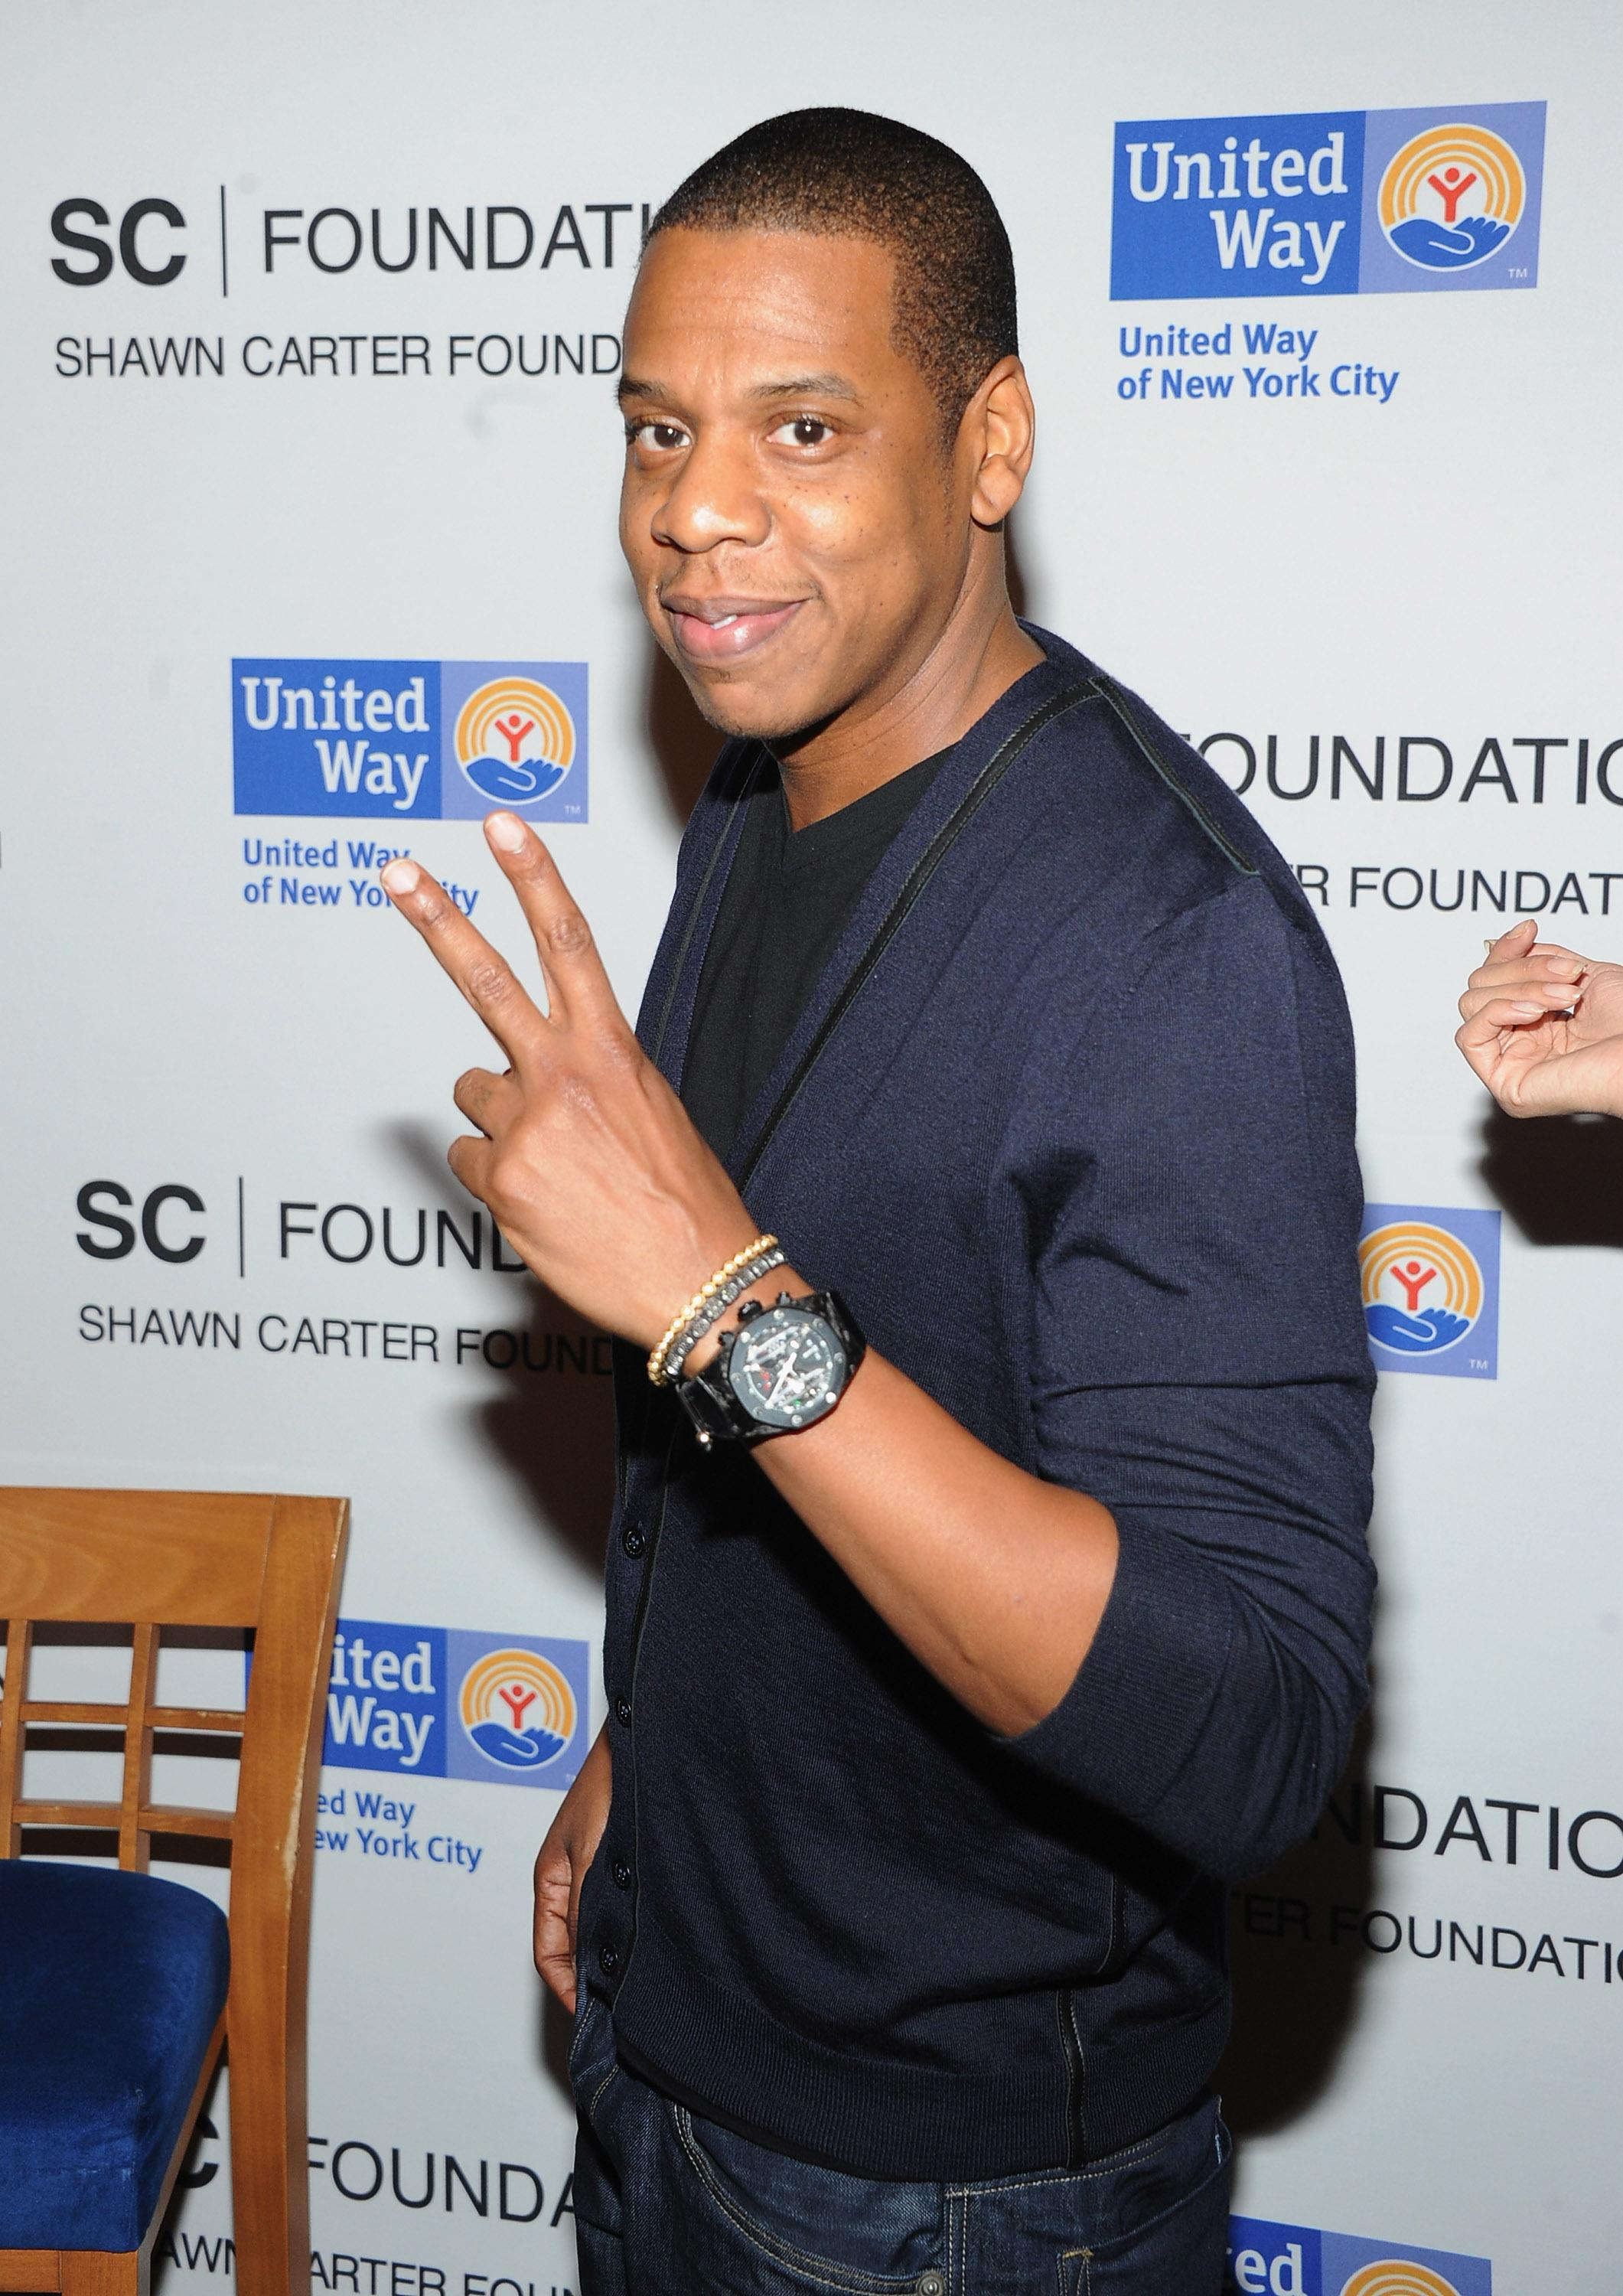 United Way Of New York City And The Shawn Carter Scholarship Foundation Announce 2 Jay Z Carnegie Hall Performances